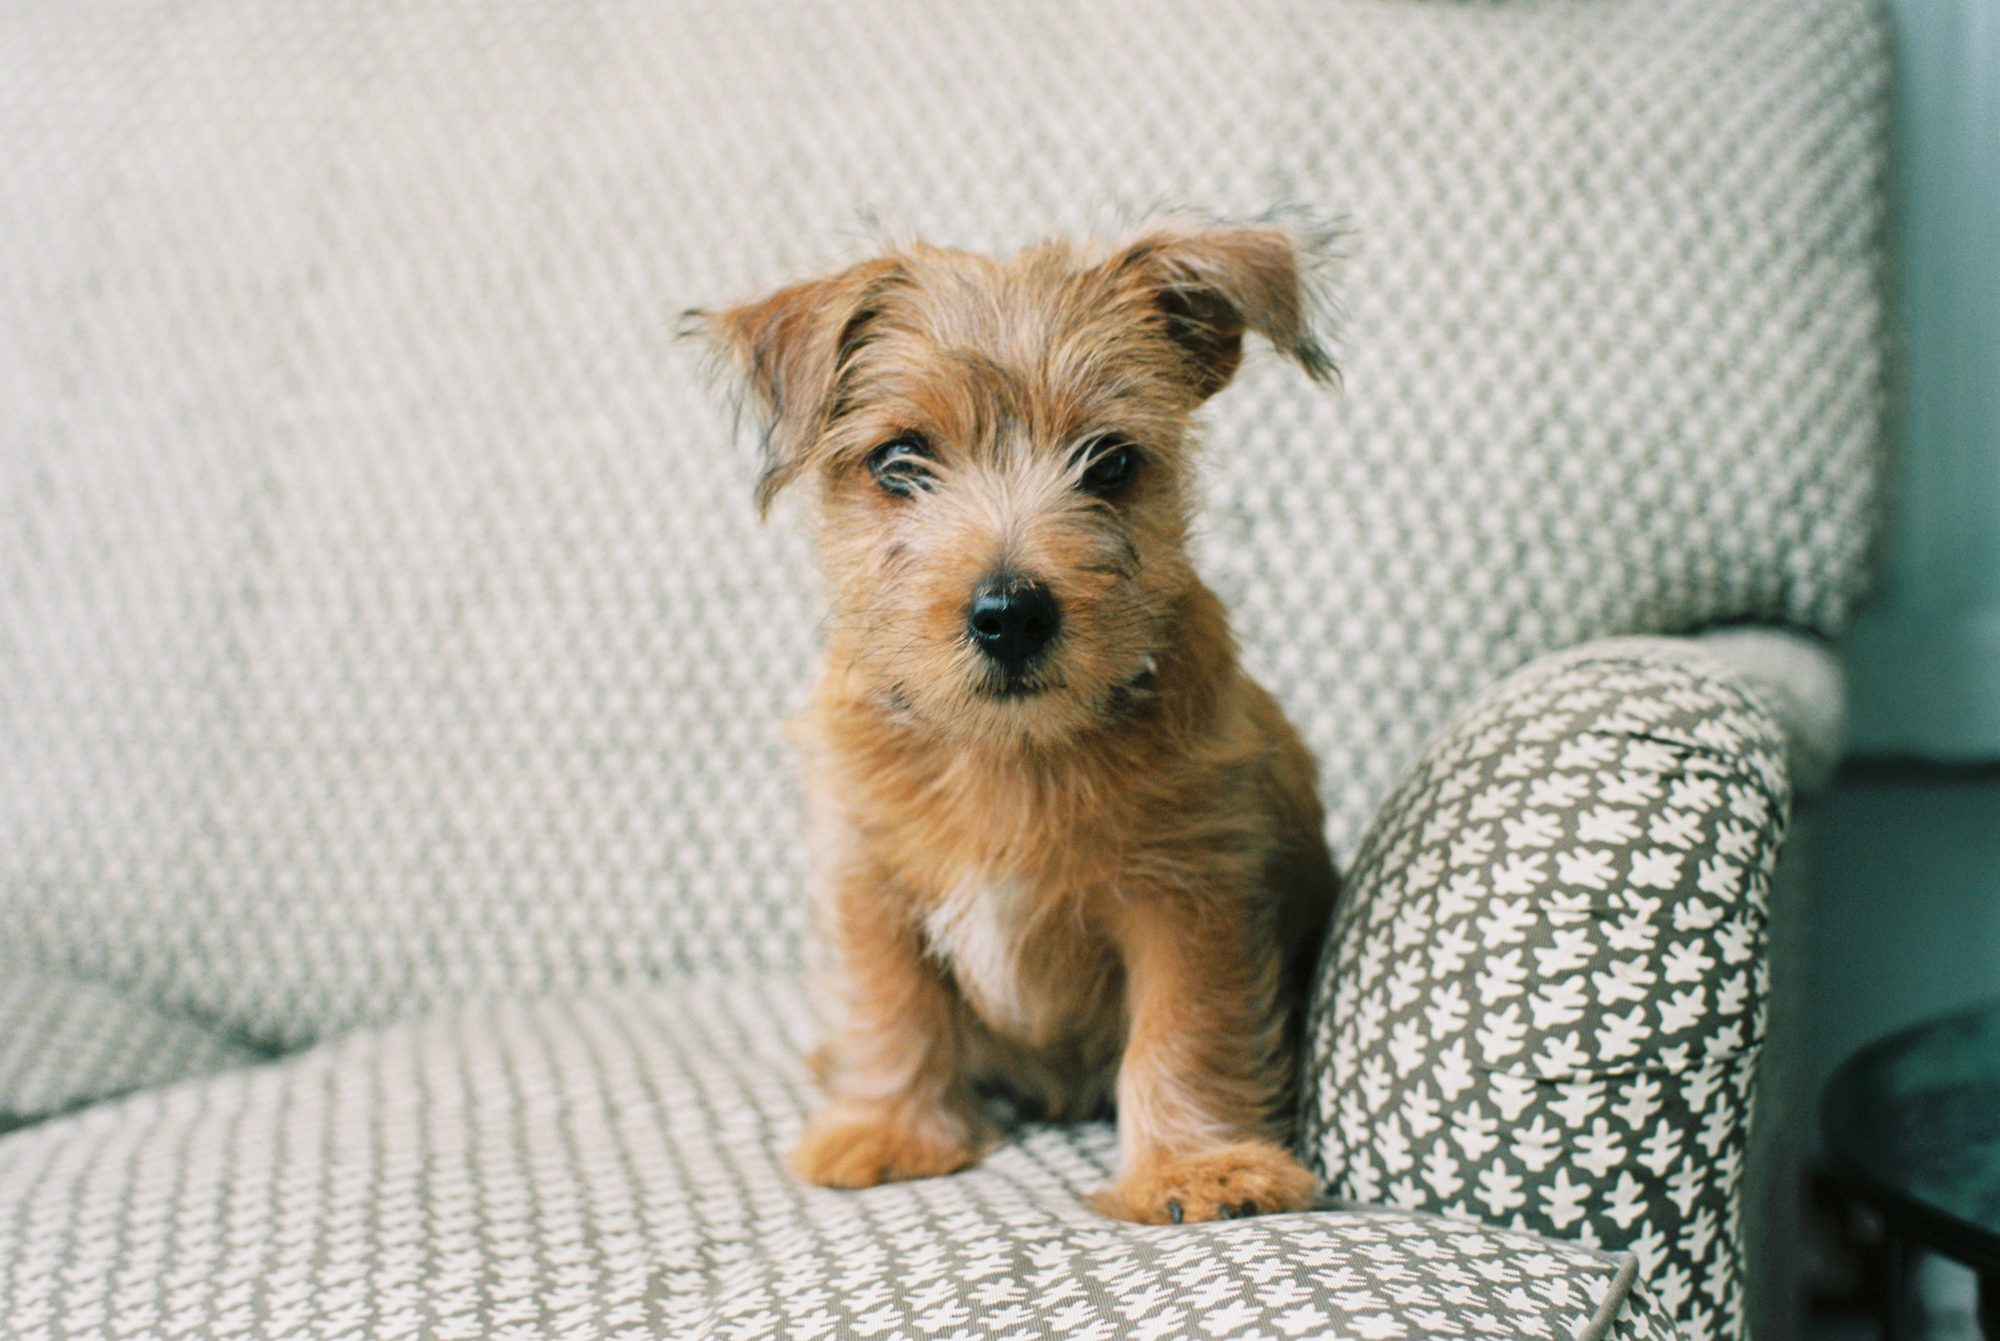 Young Puppy on Couch